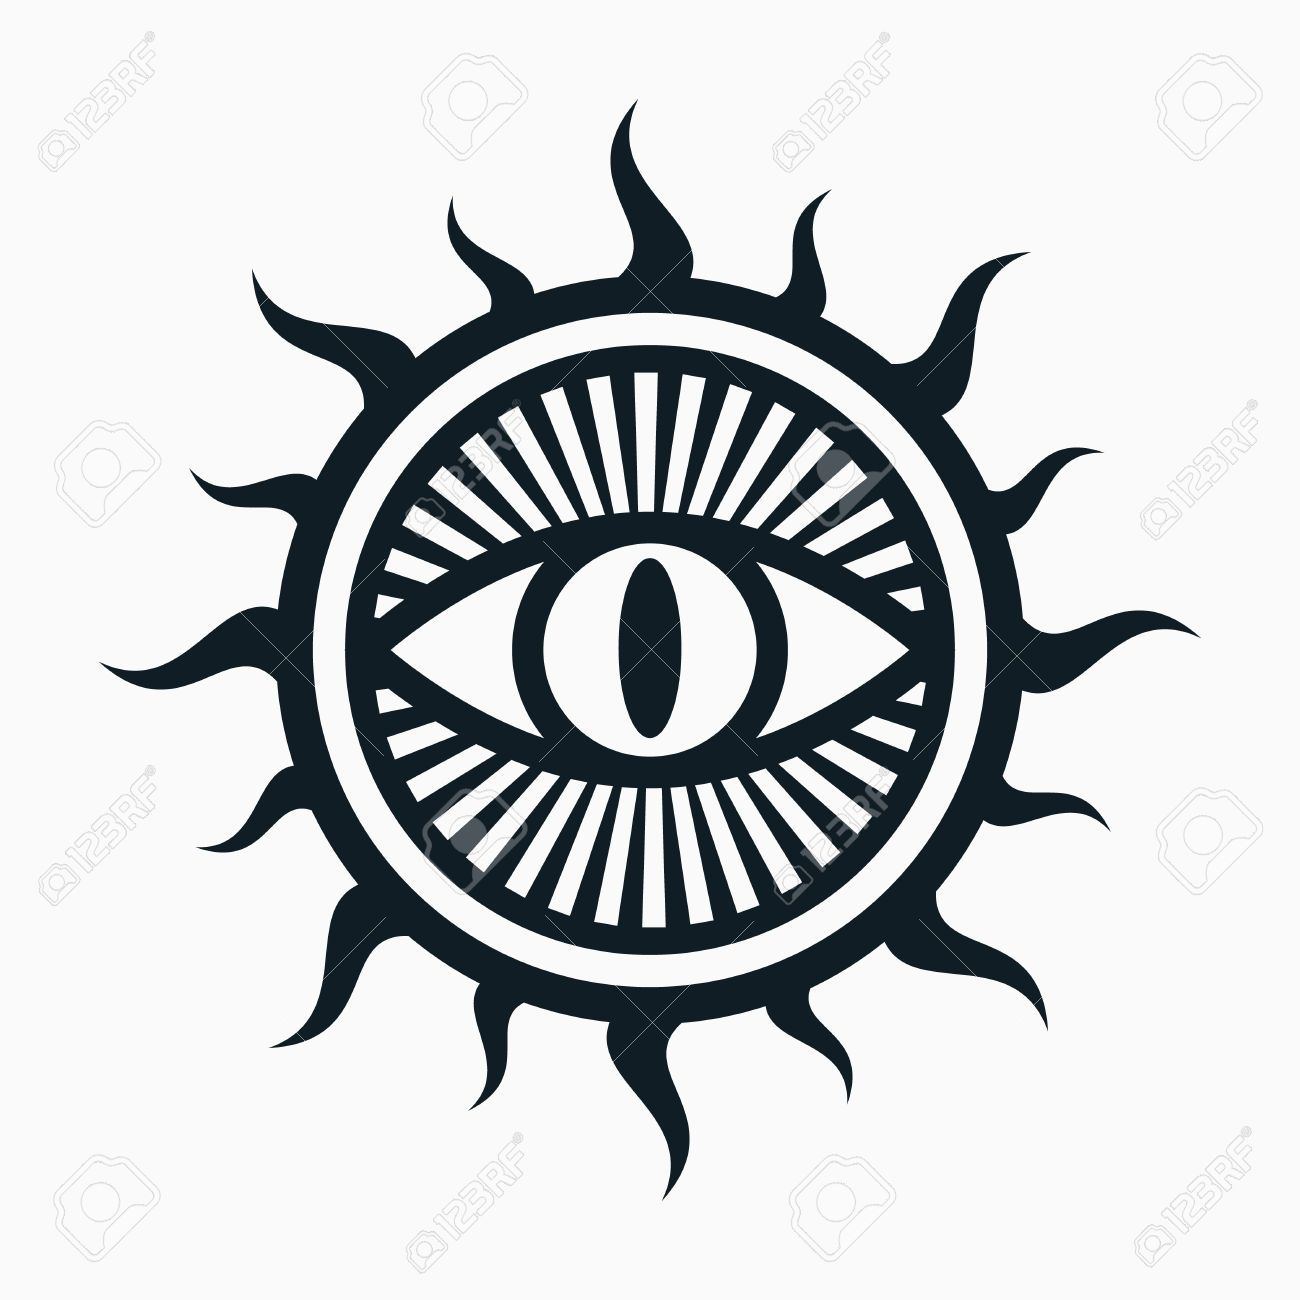 Occult symbol, eye in sun symbol Occult symbols, Occult